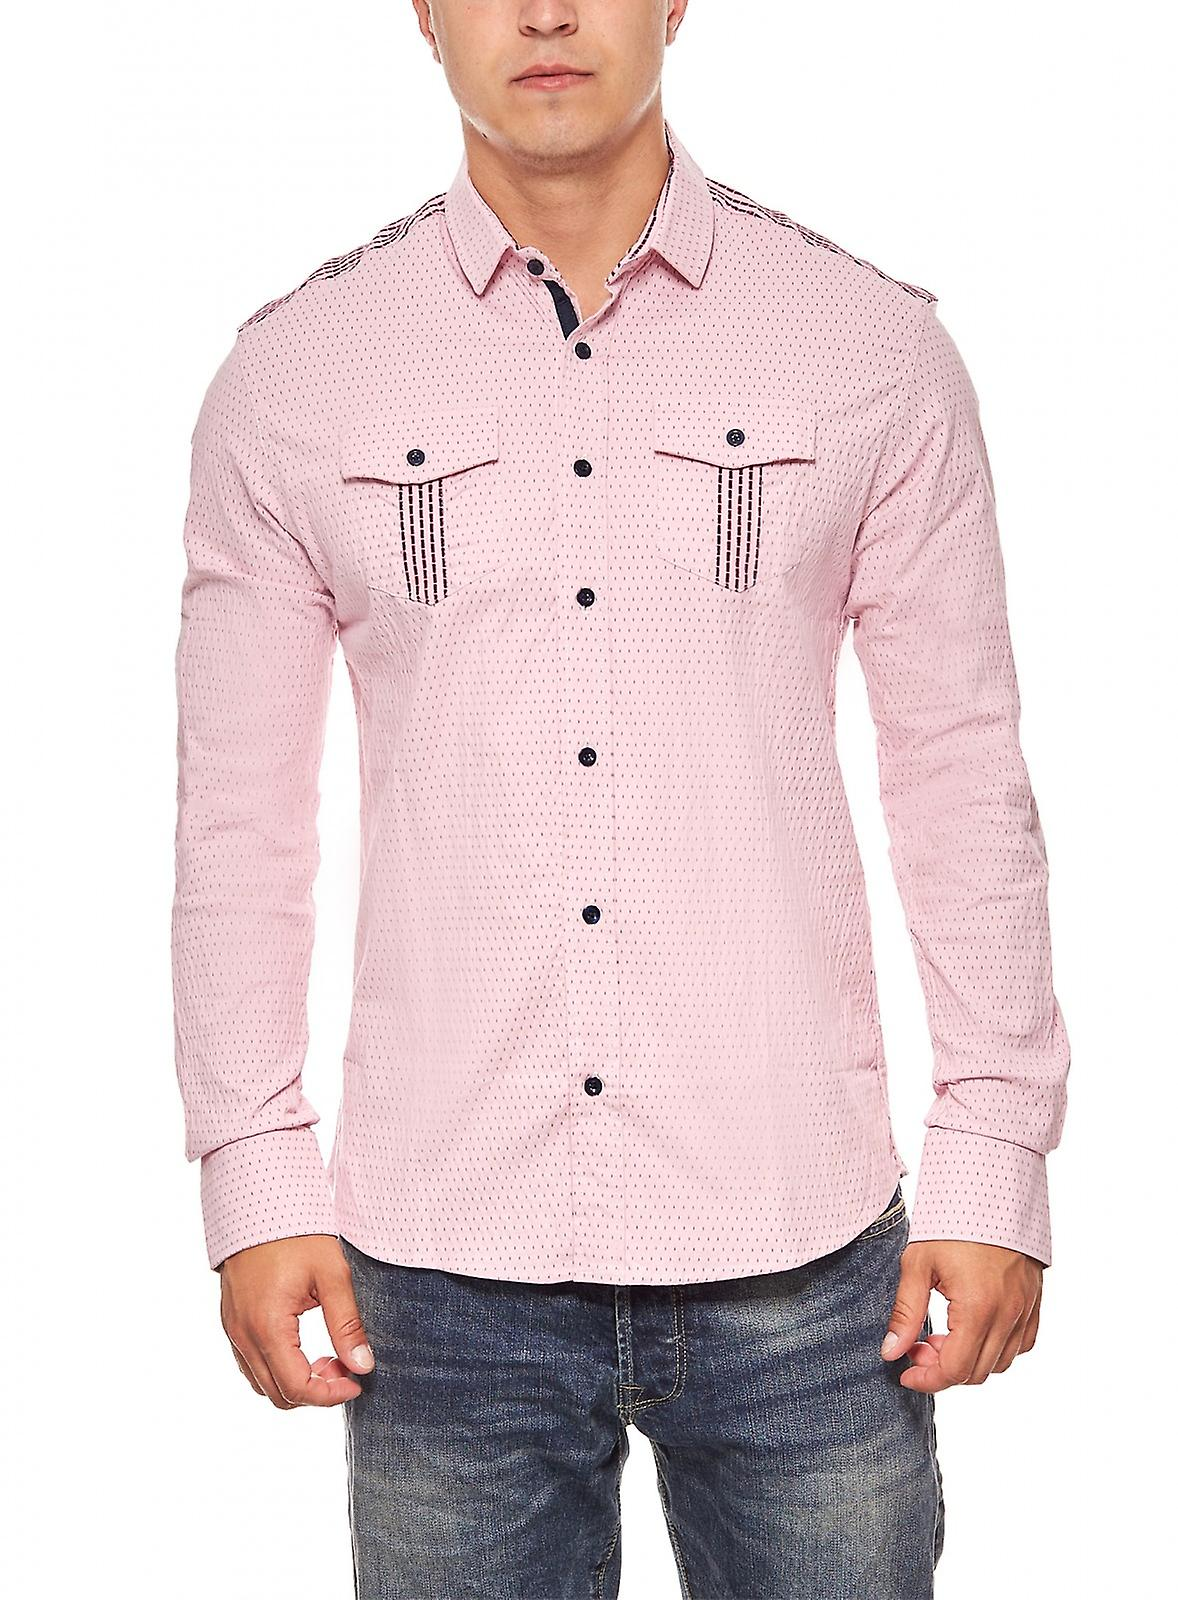 Business skjorta mens Tazzio mode rosa  59c8fc35cf0e6